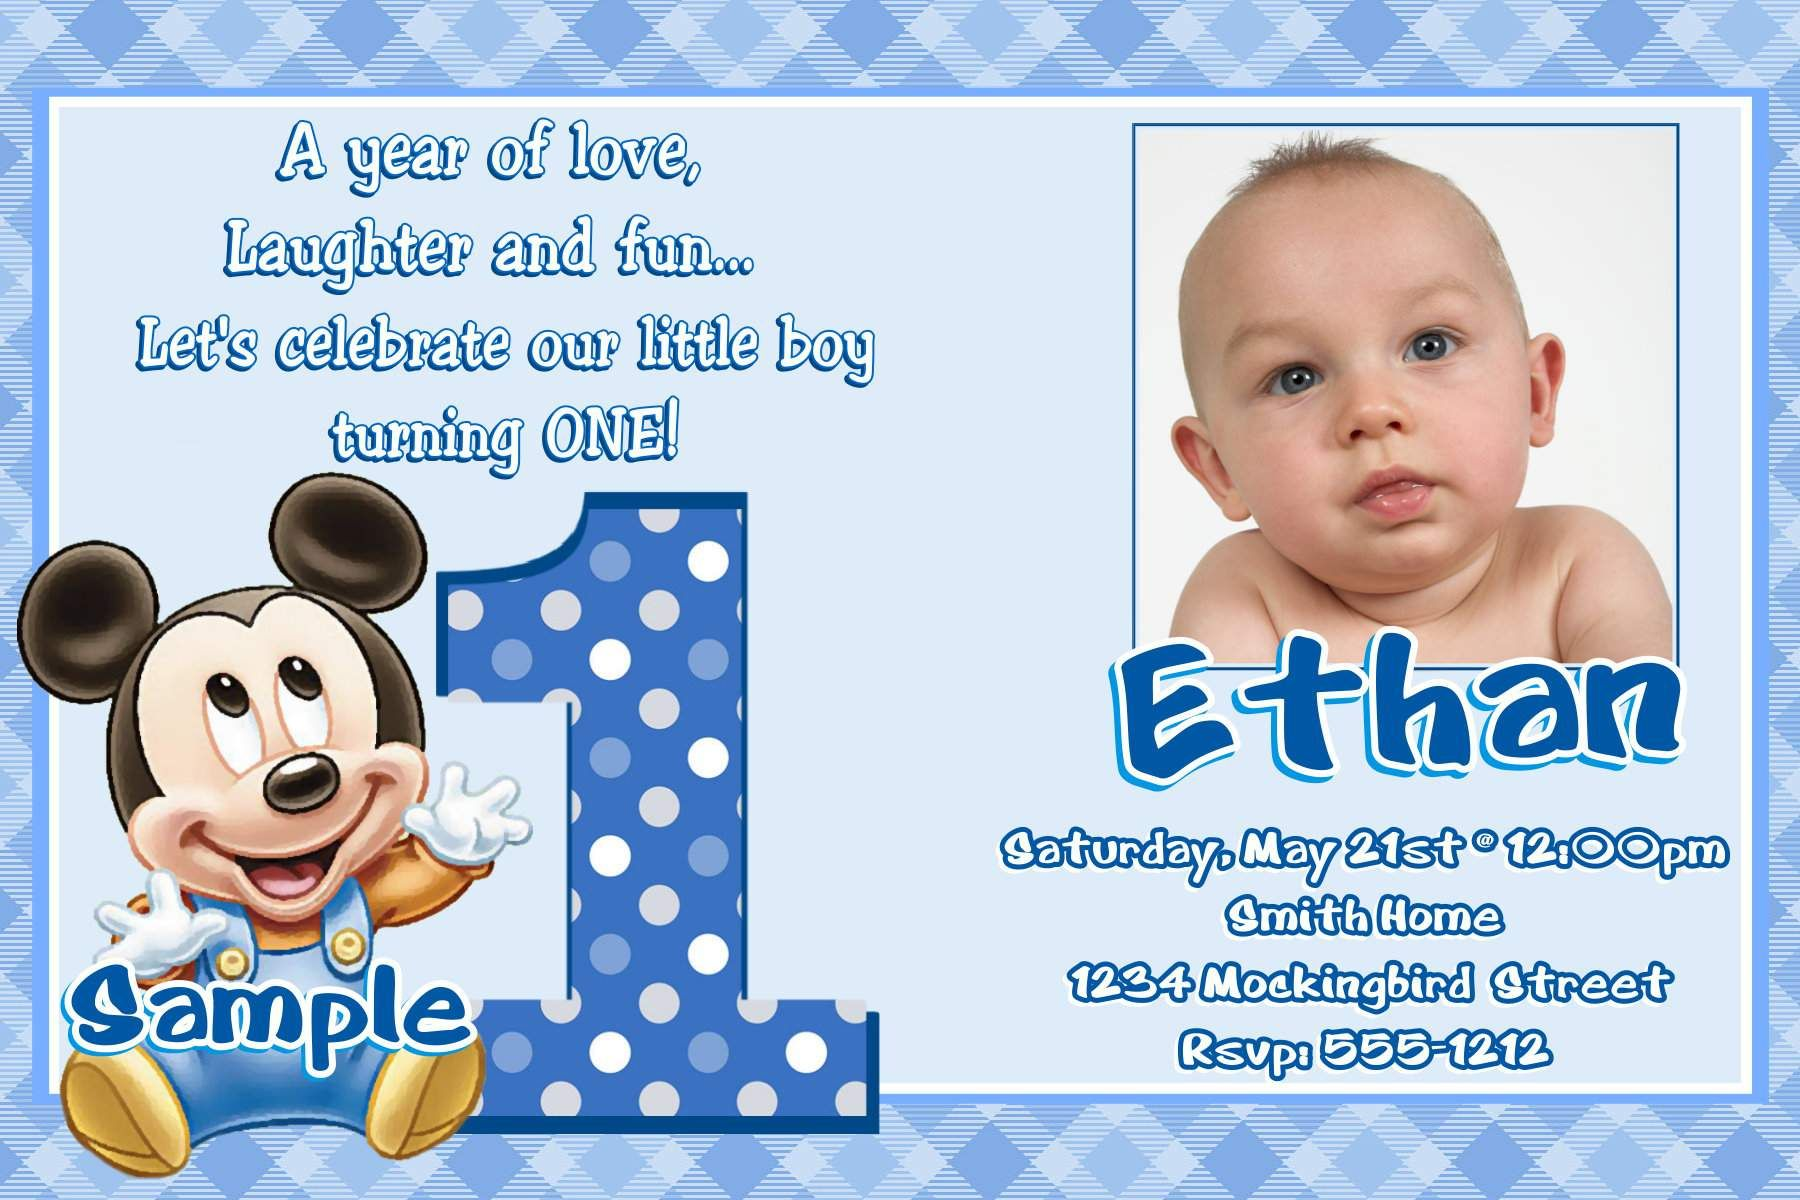 Image for mickey mouse clubhouse 1st birthday invitations ankita image for mickey mouse clubhouse 1st birthday invitations filmwisefo Image collections